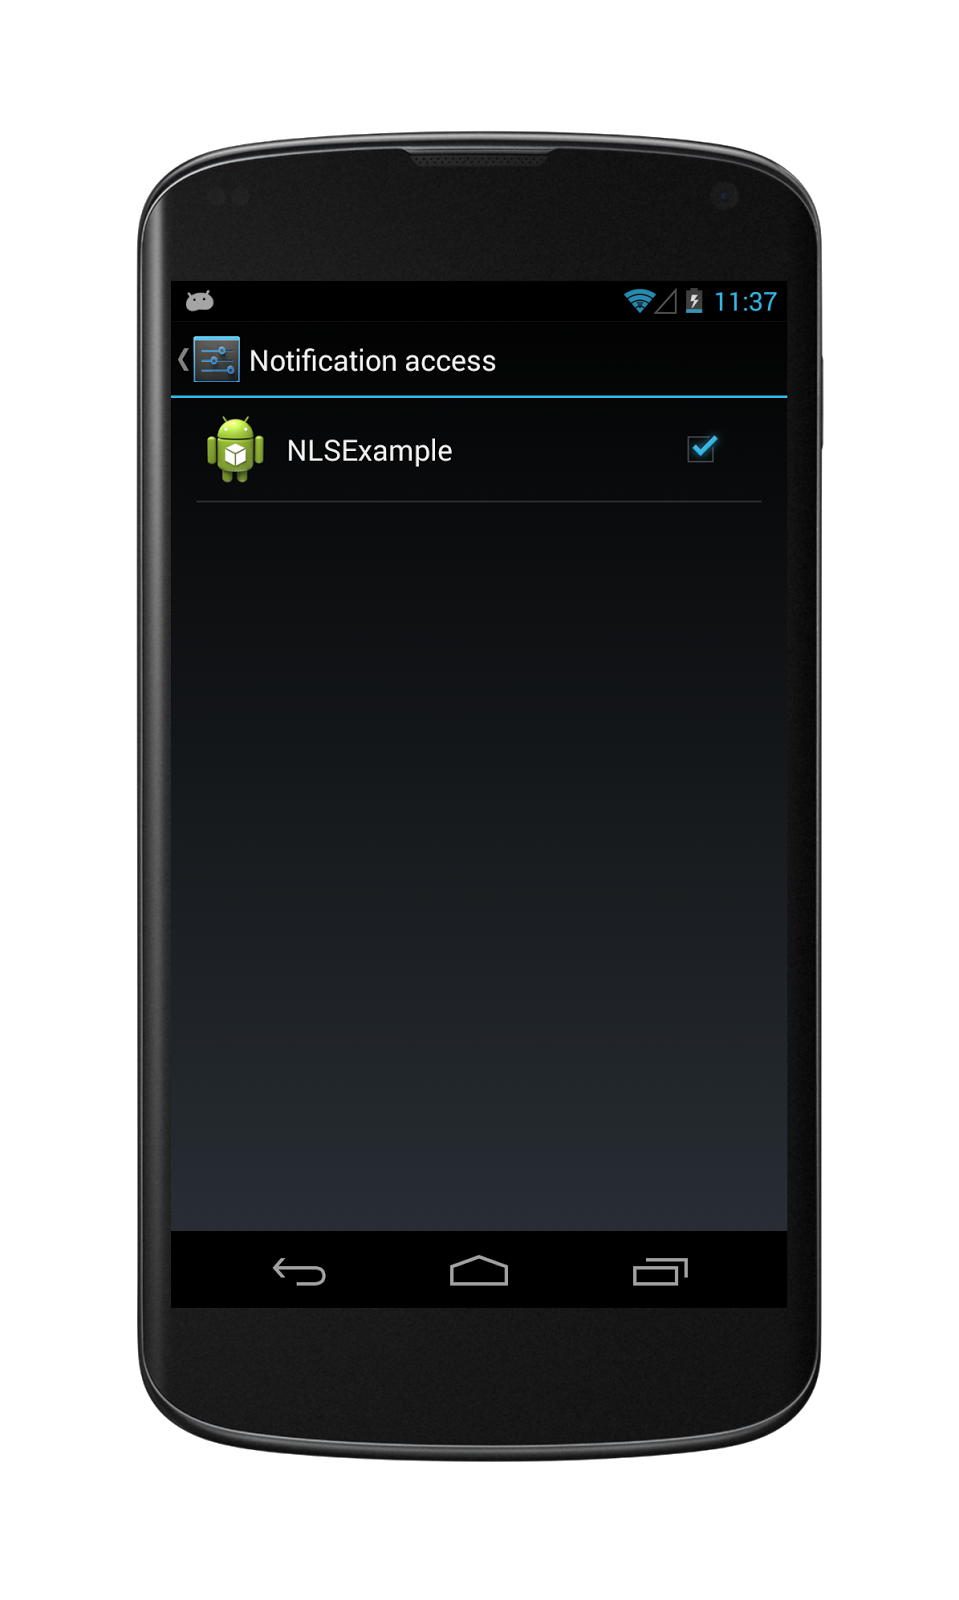 Android Notificationlistenerservice Example 推酷